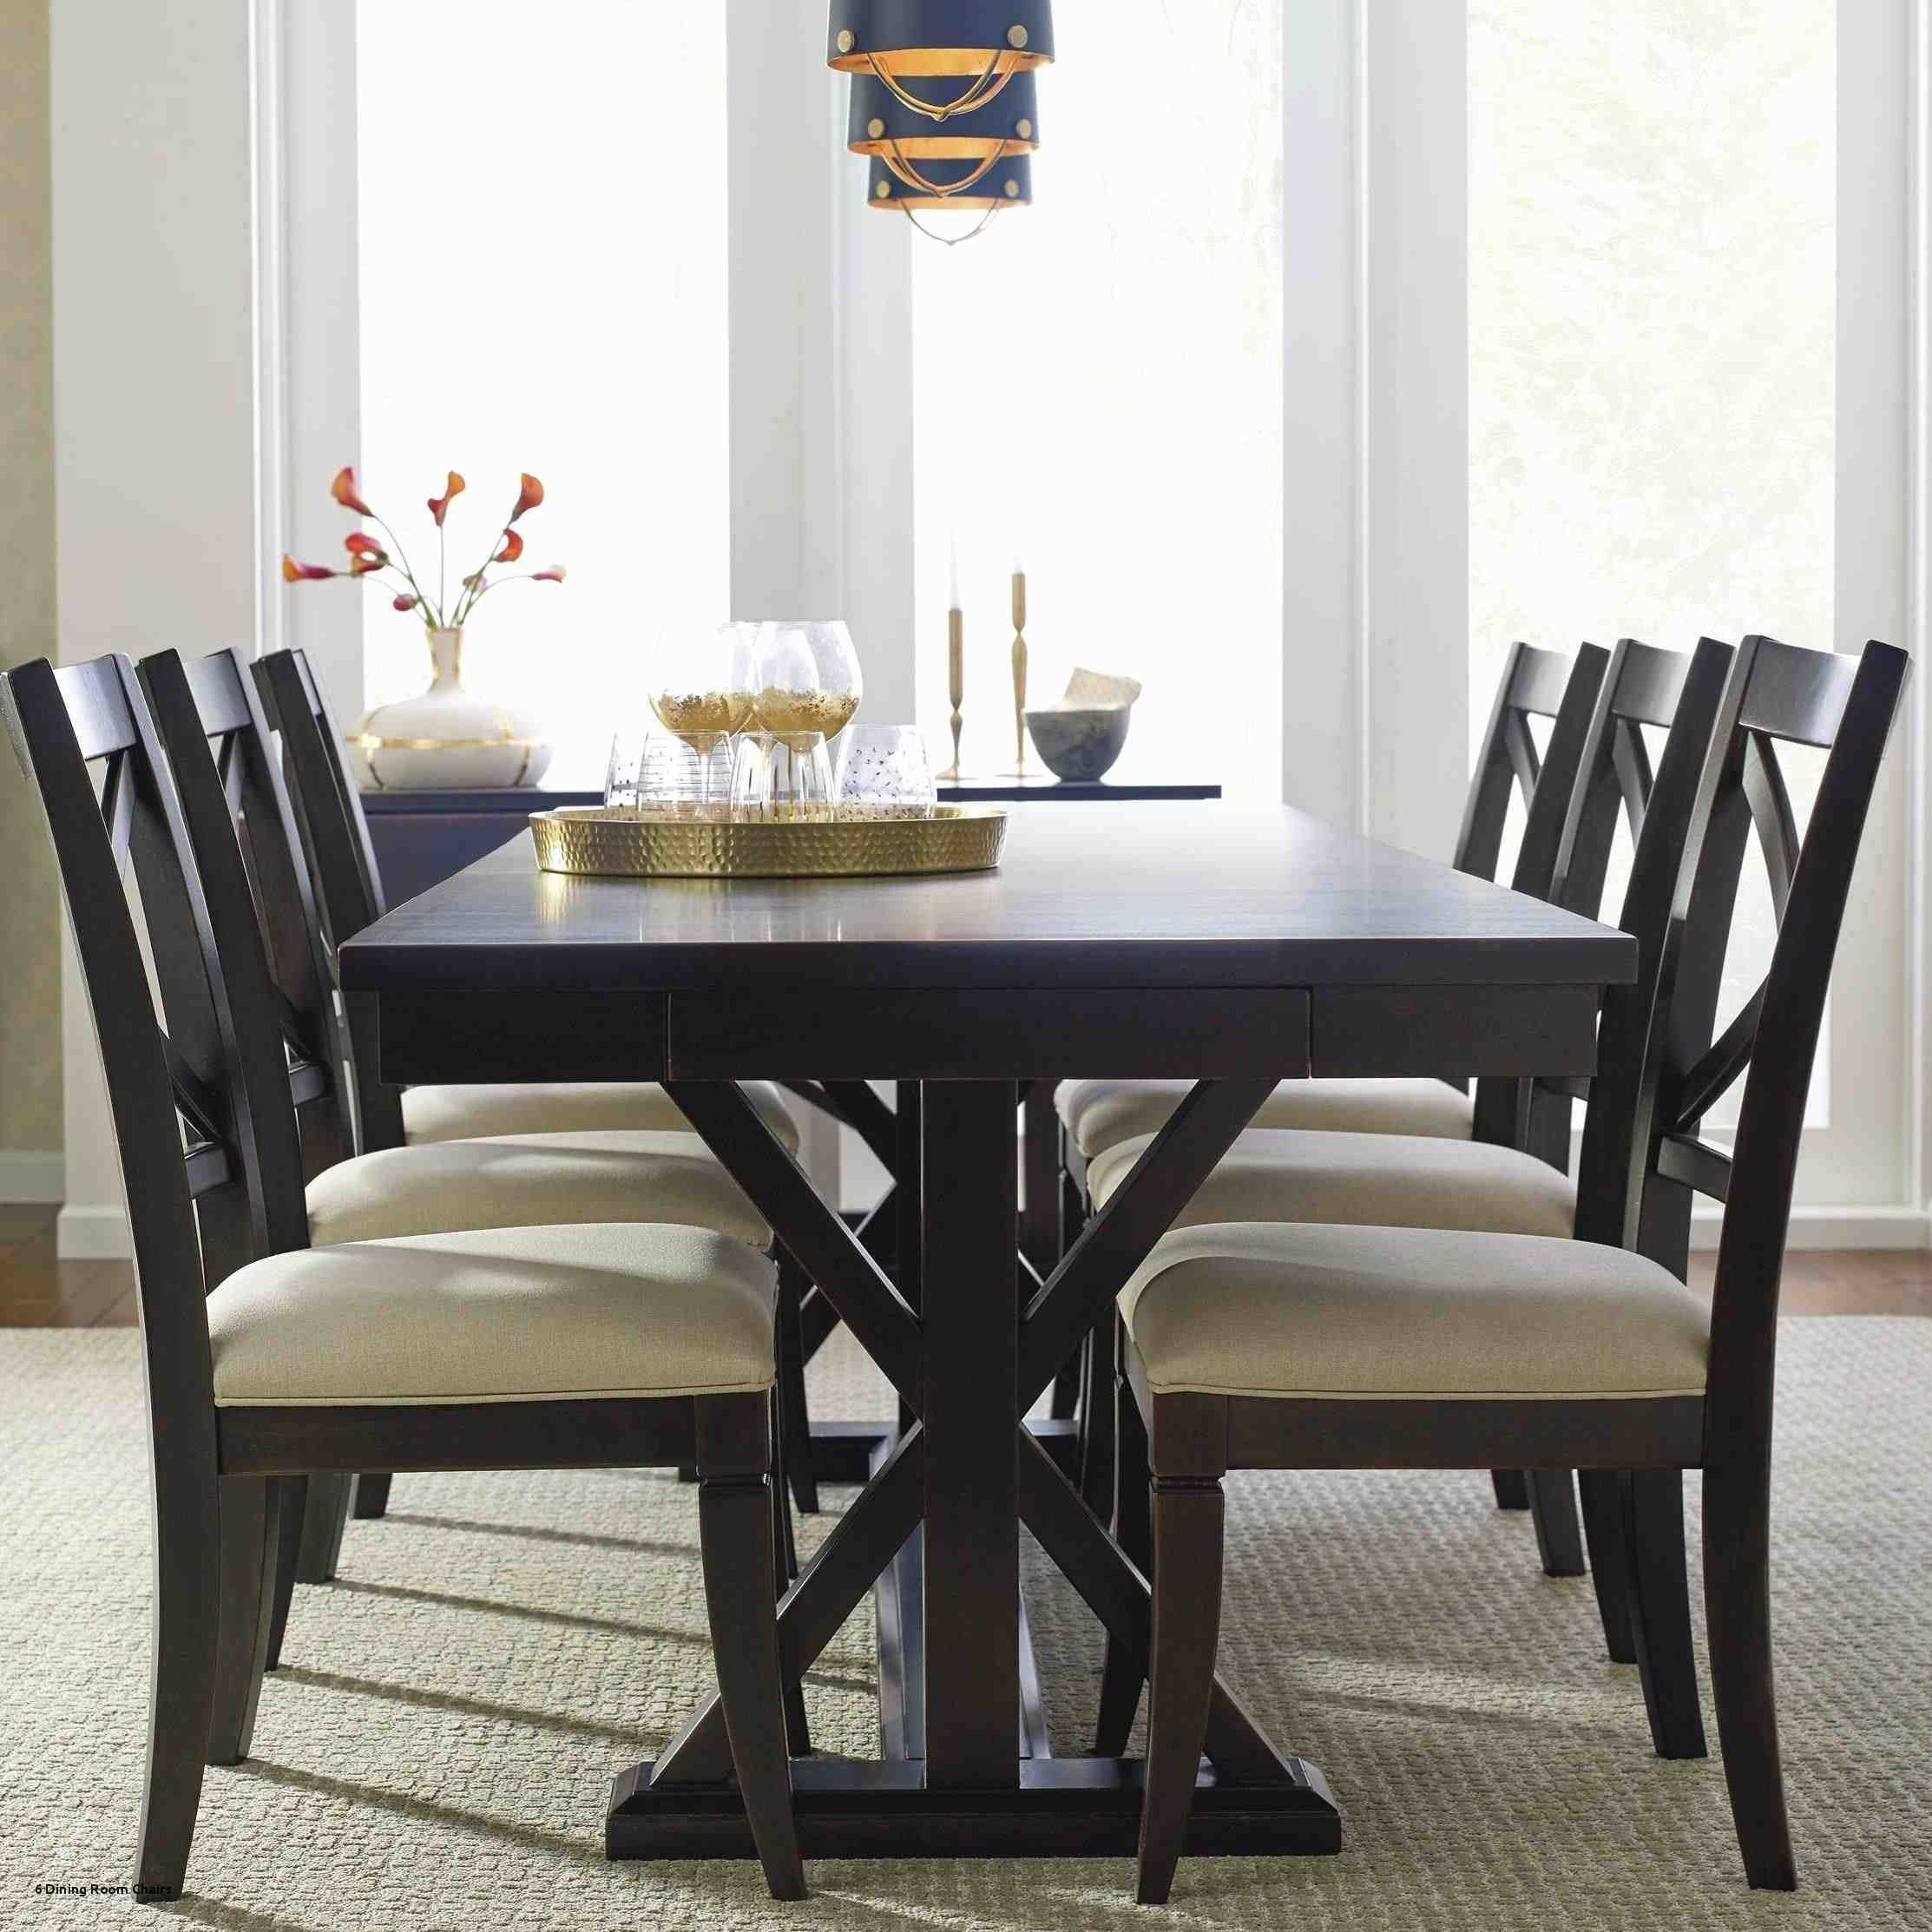 Dining Table For Small Dining Room Check More At Https 2020homedesign Com Dining Table For Small Dining Room Di 2020 Interior Modern